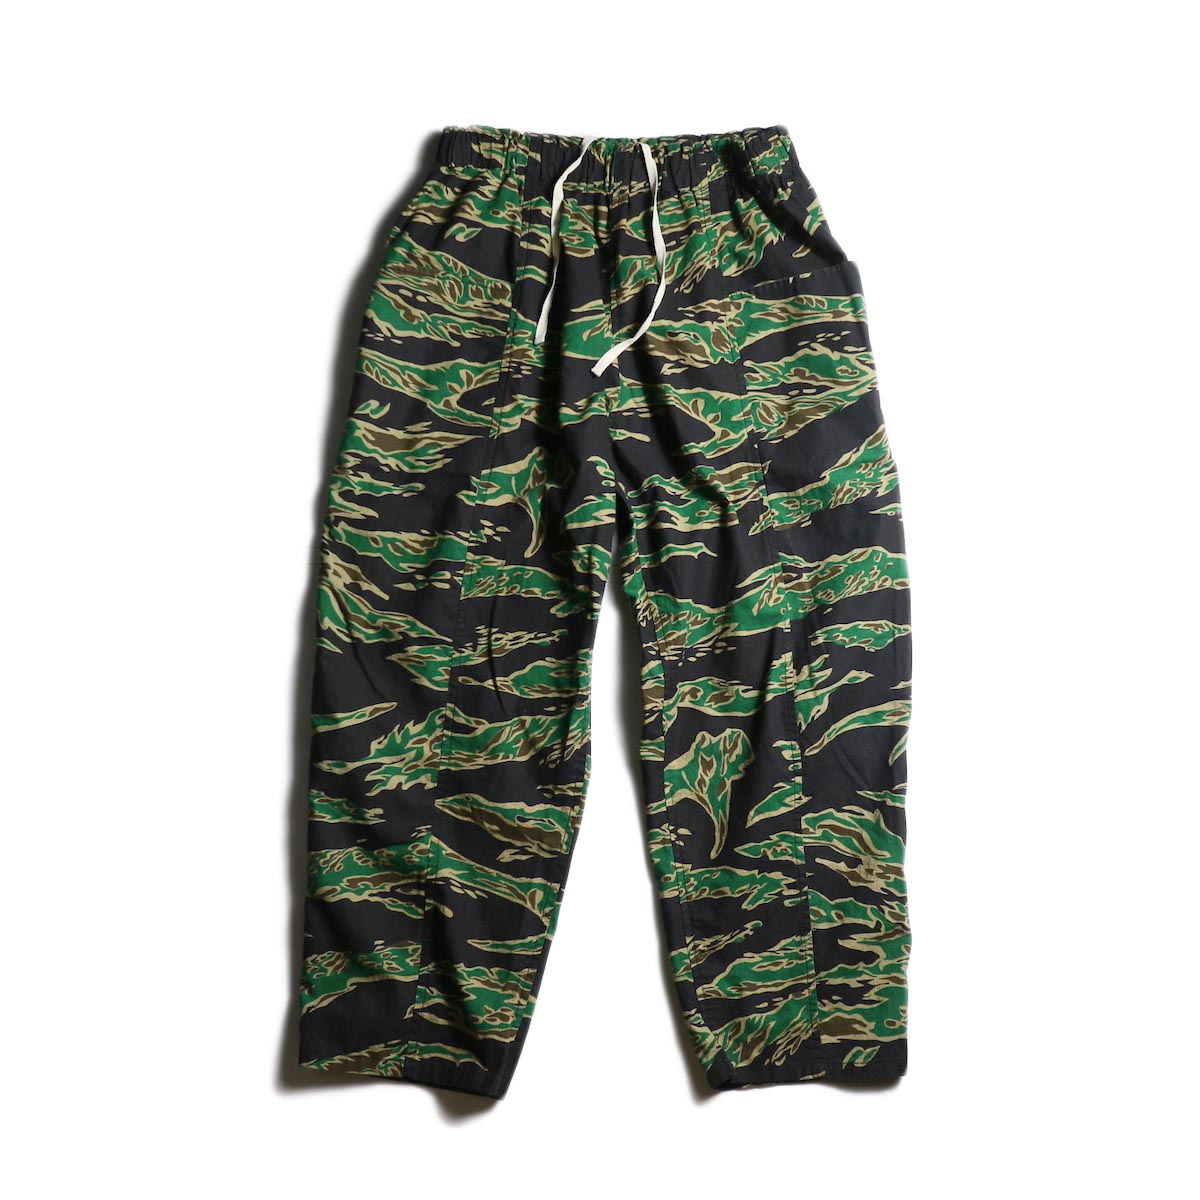 SOUTH2 WEST8 / Army String Pant -Printed Flannel / Camouflage (Tiger Camo)